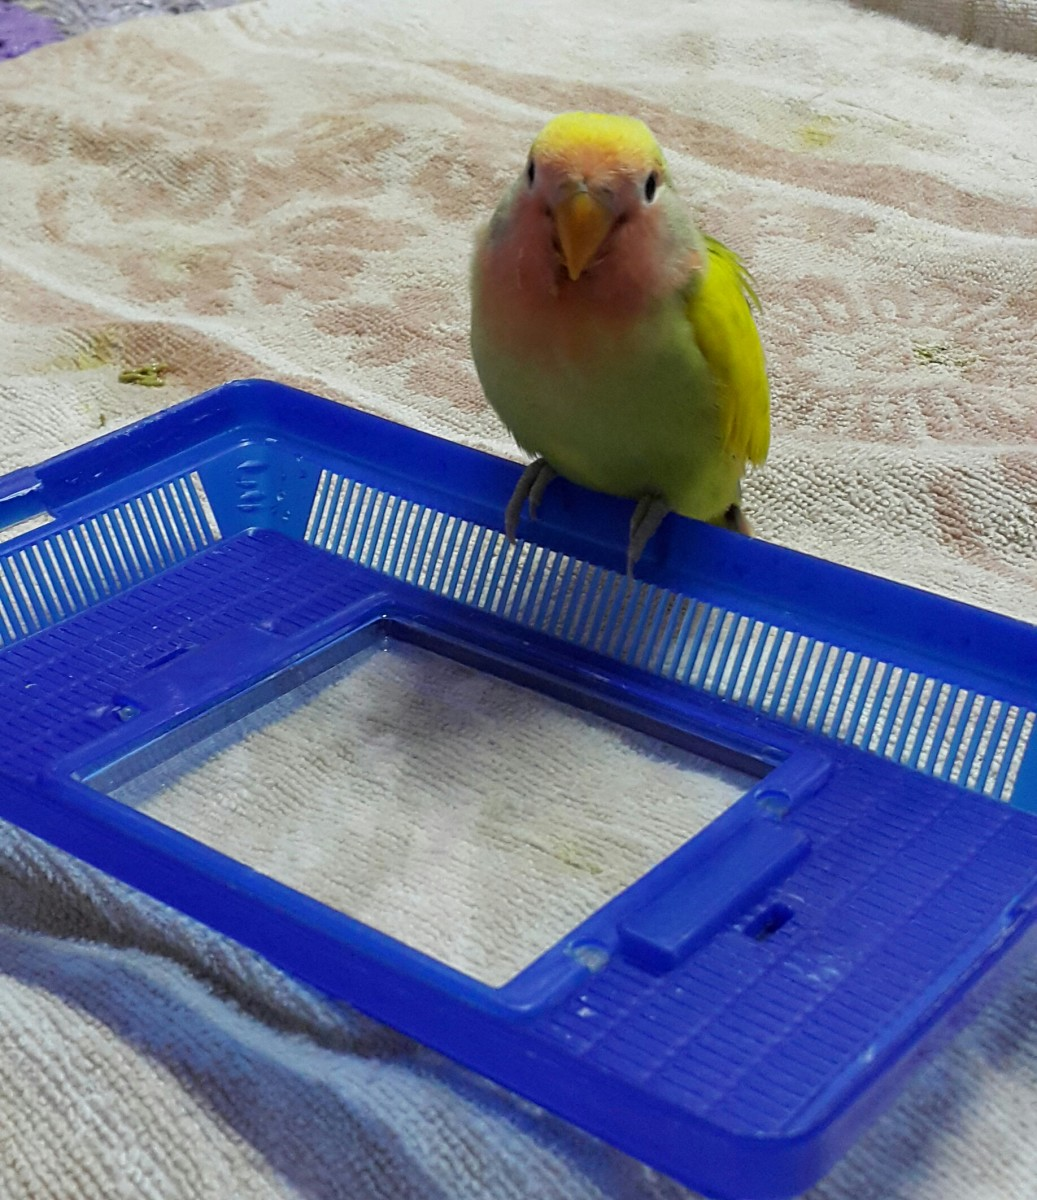 Mumu is my baby lovebird. He is waiting to be fed.